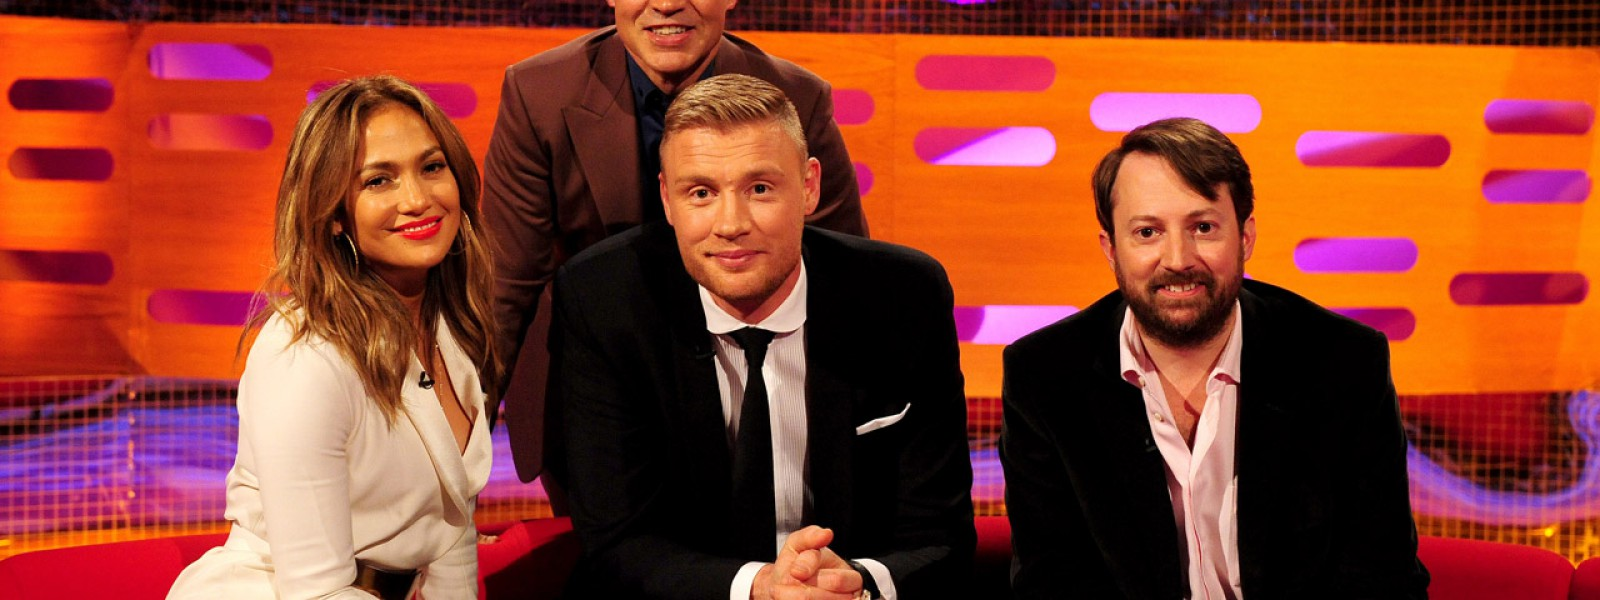 grahamnorton_photo_s13e9_1